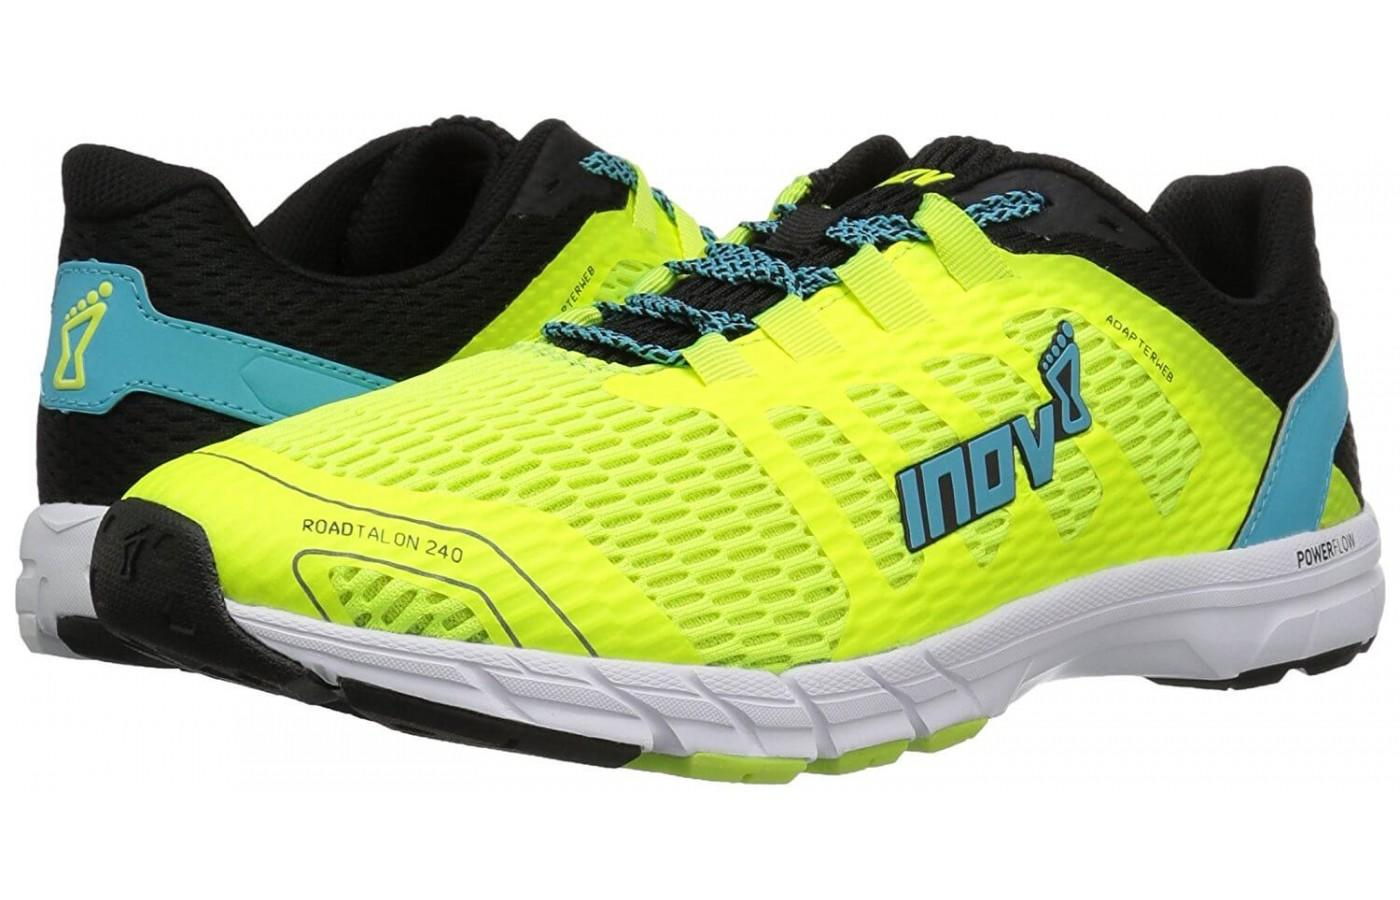 The Inov-8 Roadtalon 240 reviewed and compared.